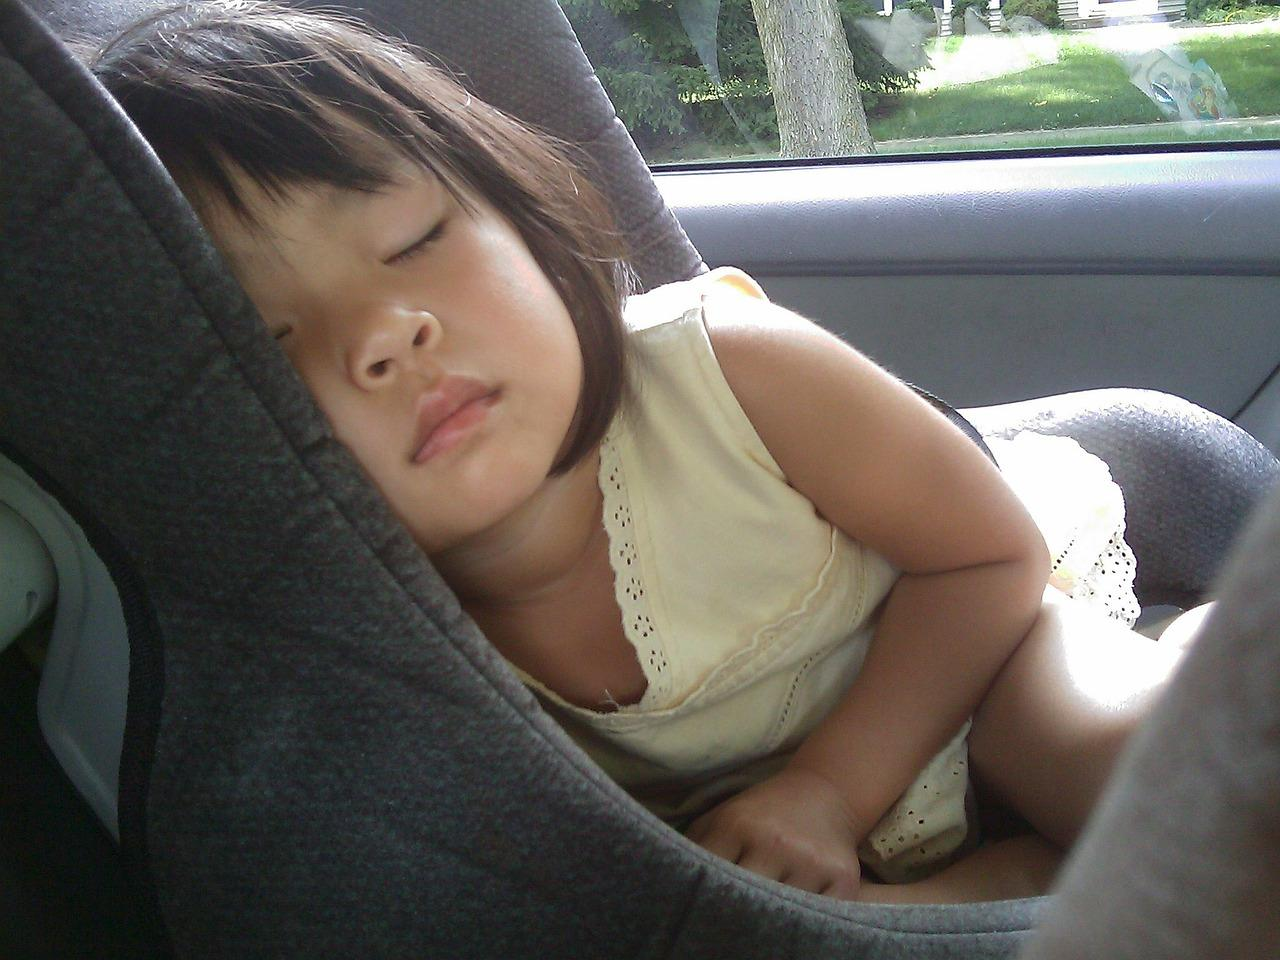 How to Treat Motion Sickness in Children